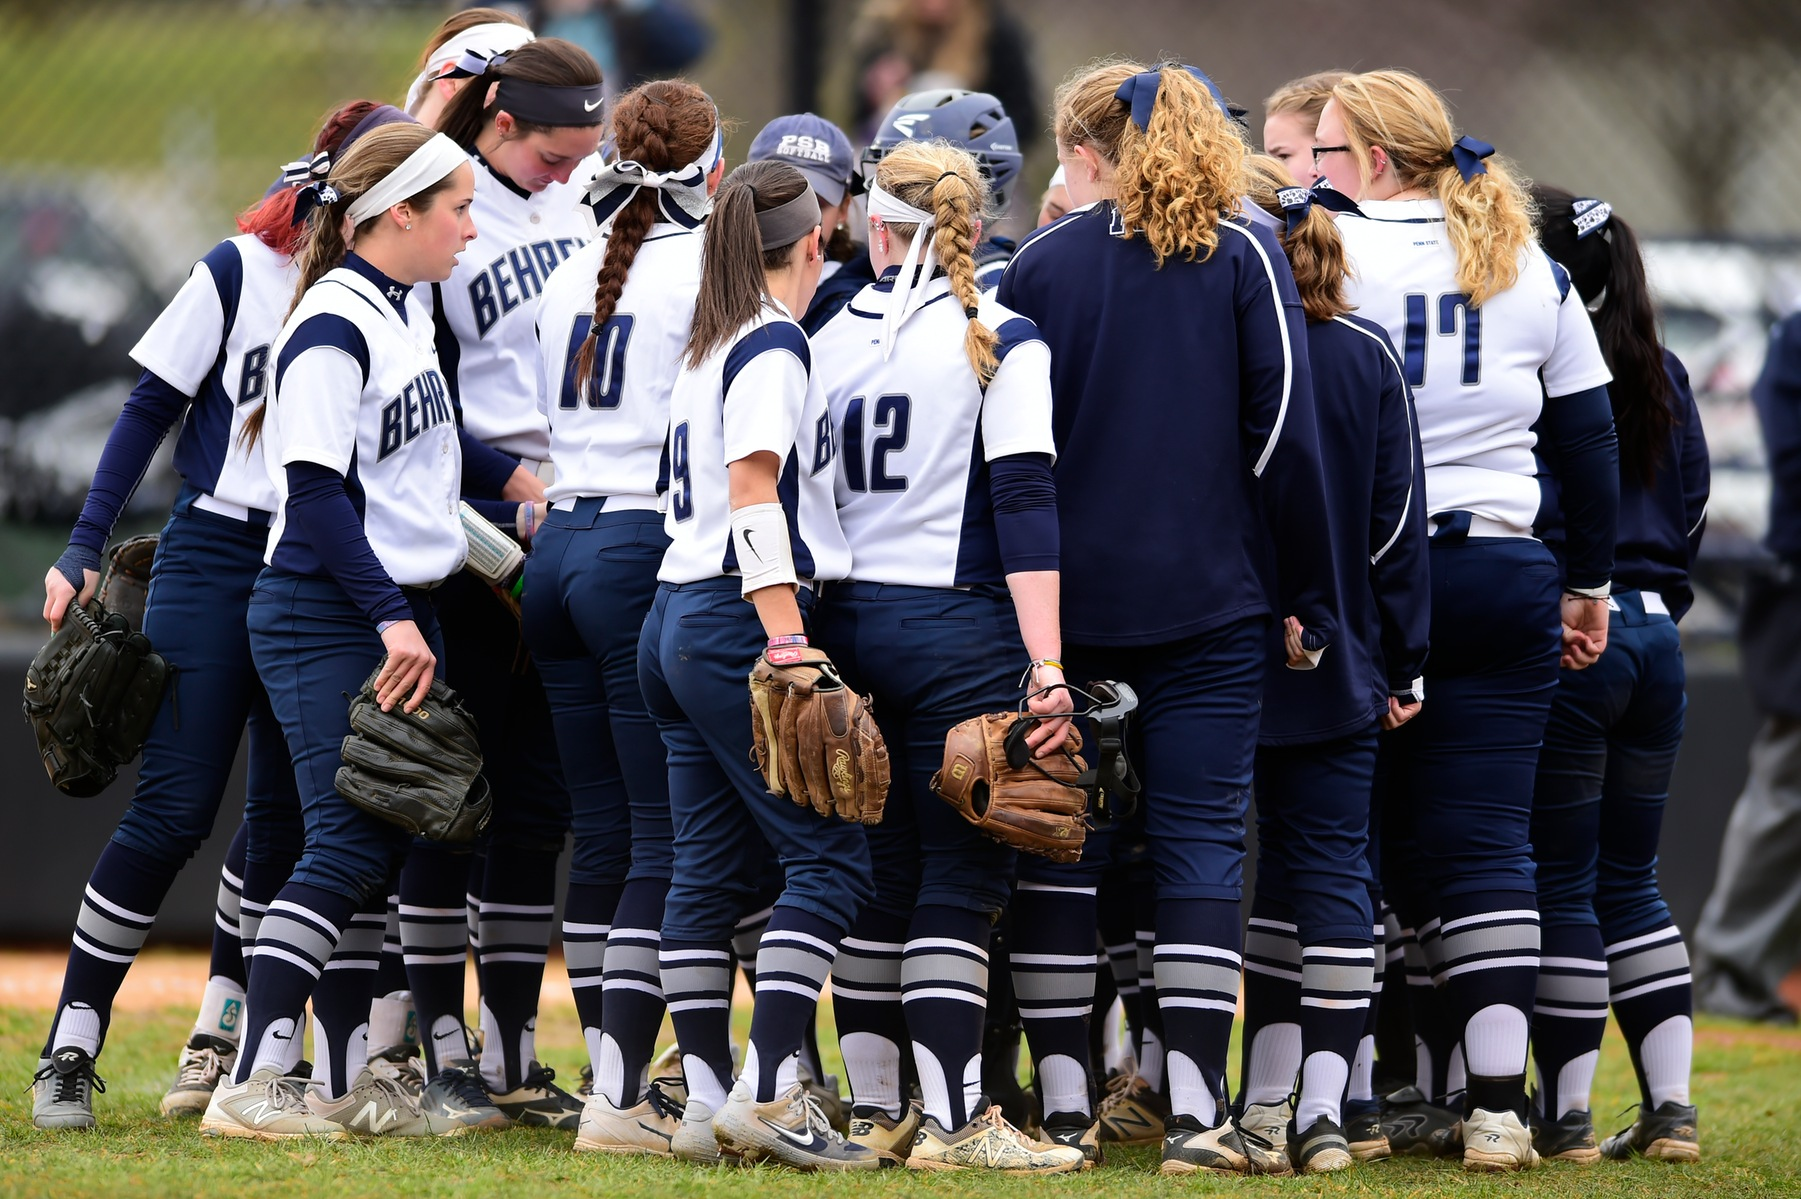 Softball Travels to D'Youville for AMCC Matchup